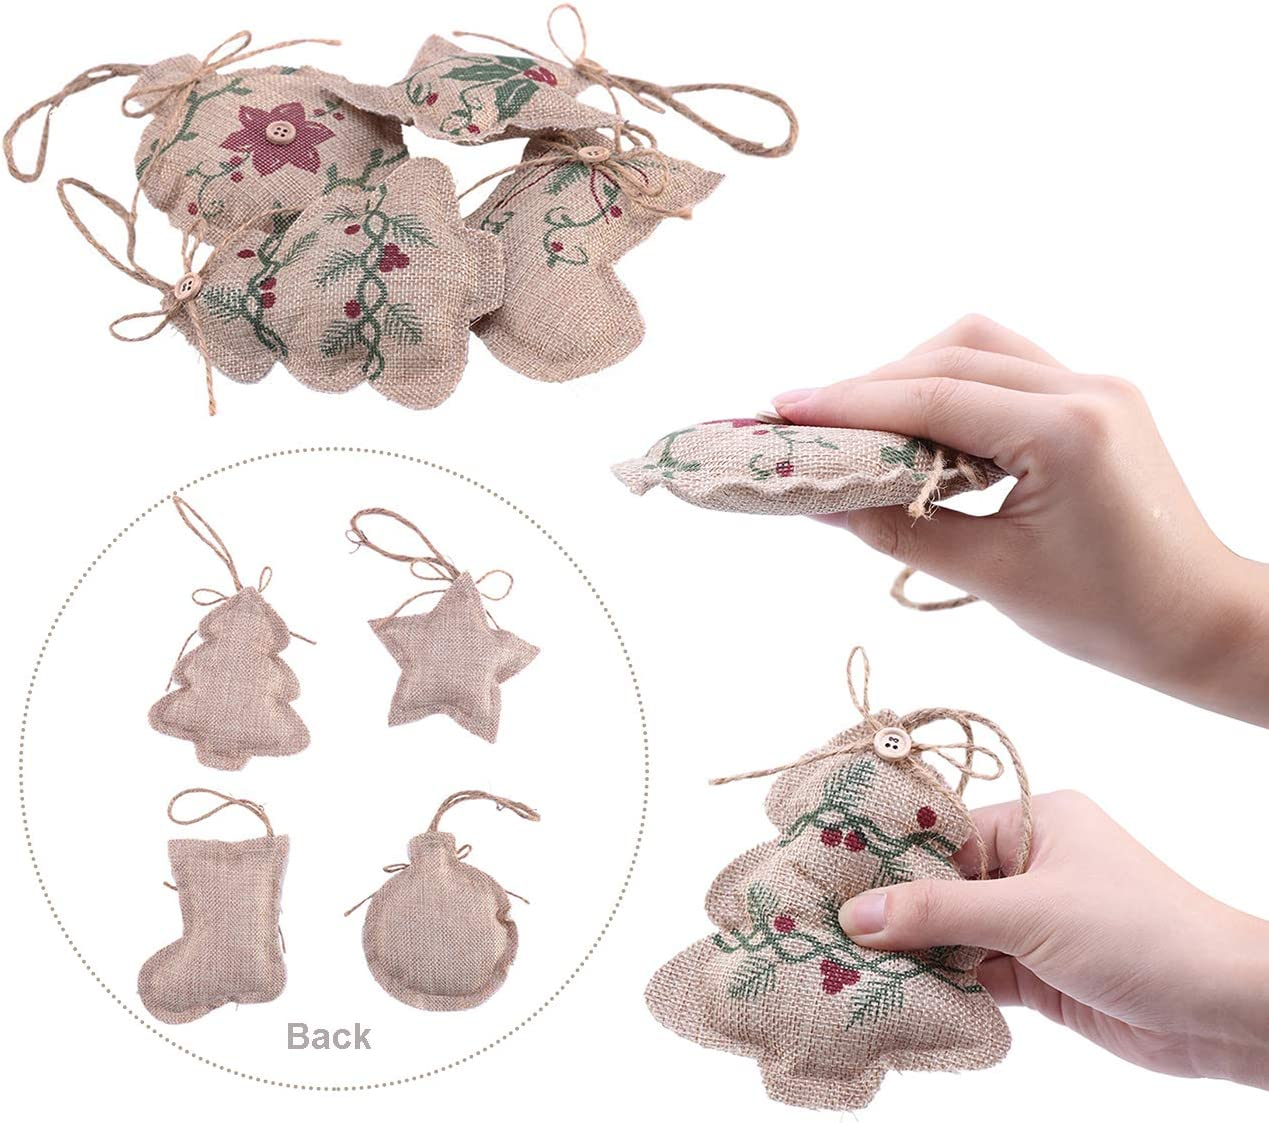 Burlap Hanging Ornaments for Christmas Tree Decorations Christmas Stocking Ball Tree Bell Pendant for Christmas Holiday Party Decor Fashionclubs Rustic Christmas Tree Ornaments Stocking Decorations